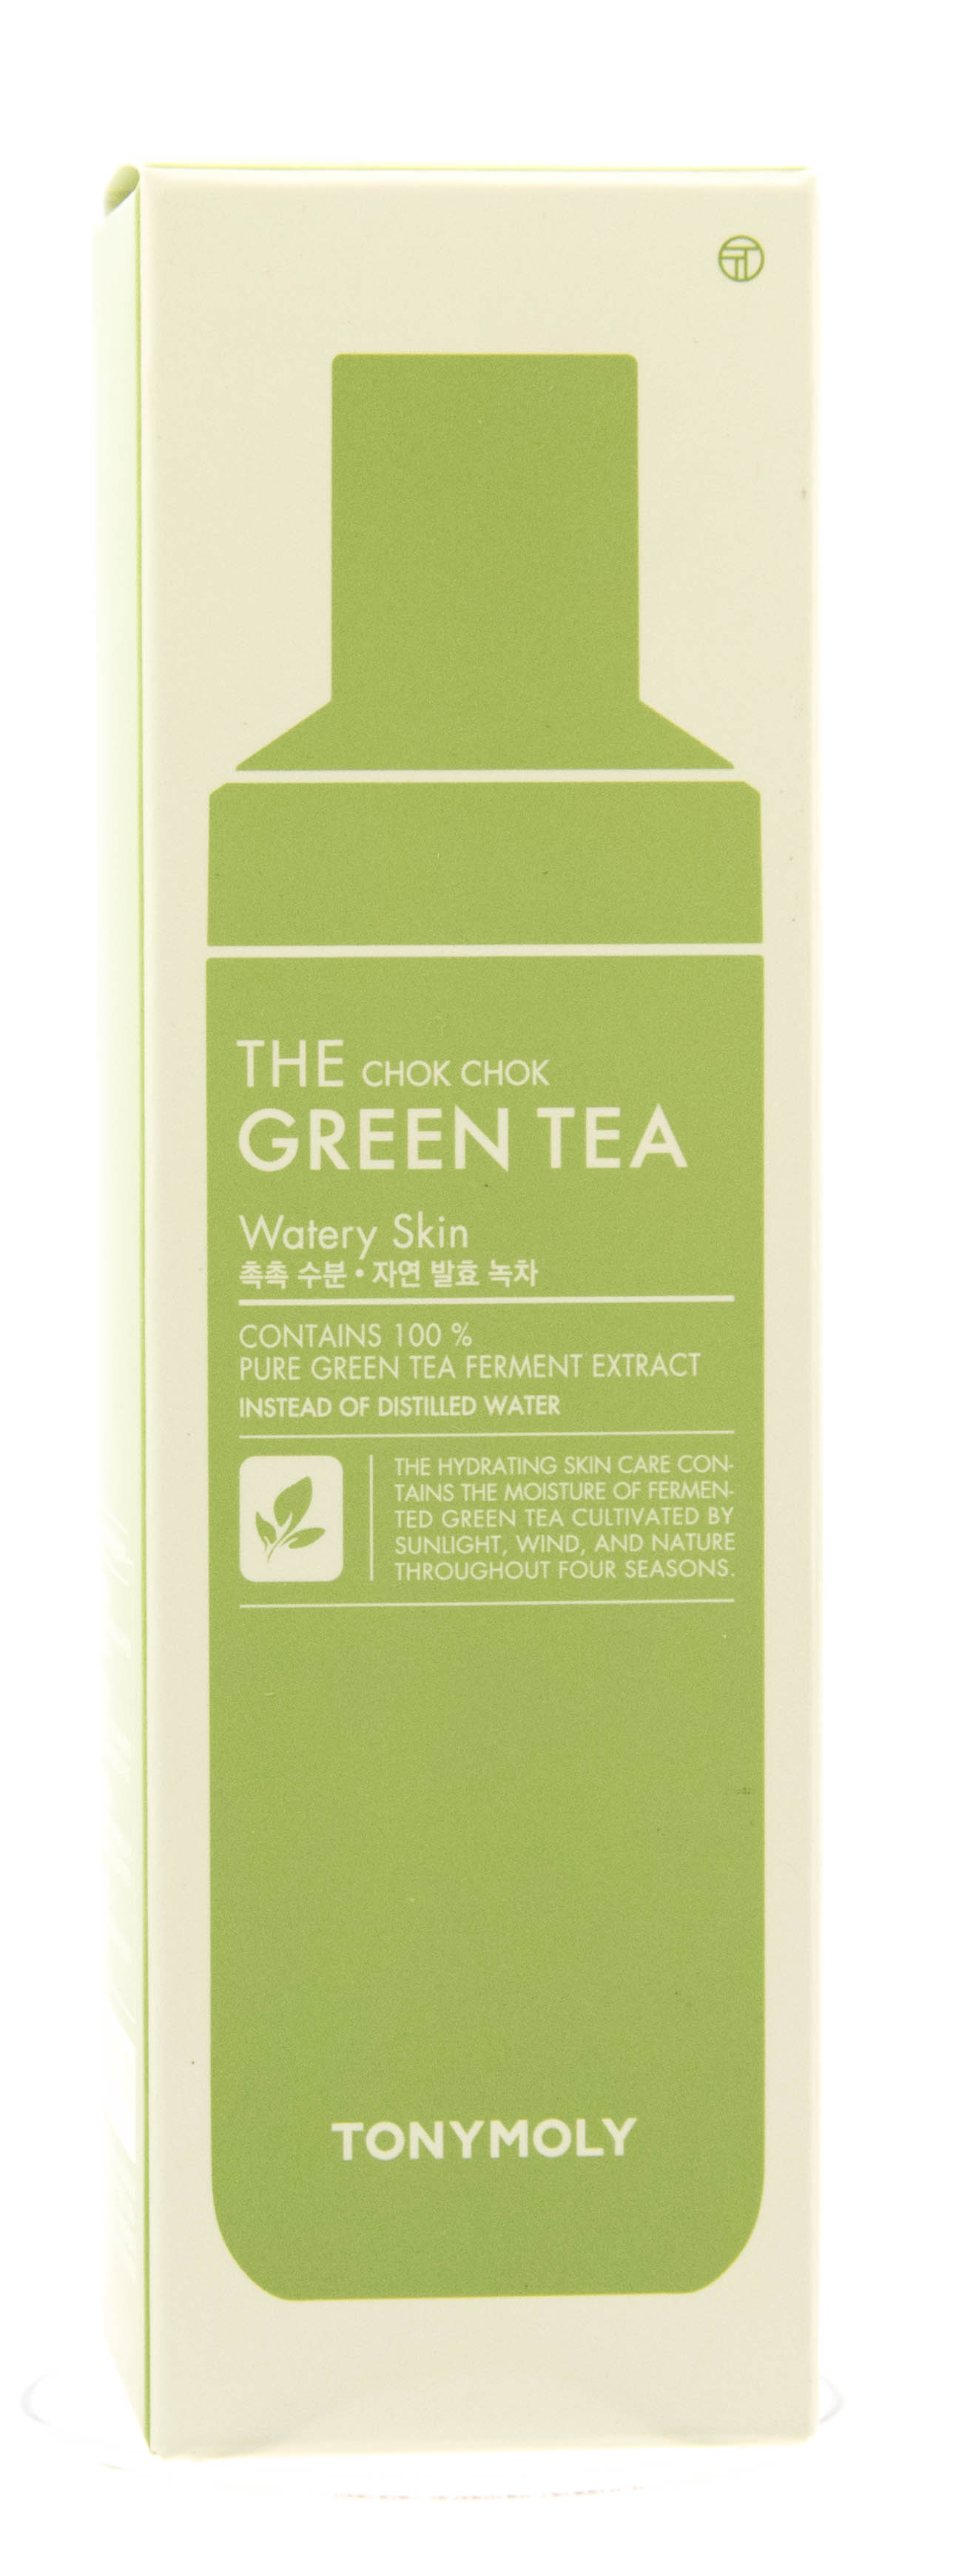 Тони Моли Лосьон с экстрактом зеленого чая 180 мл (Tony Moly, Green Tea) фото 1